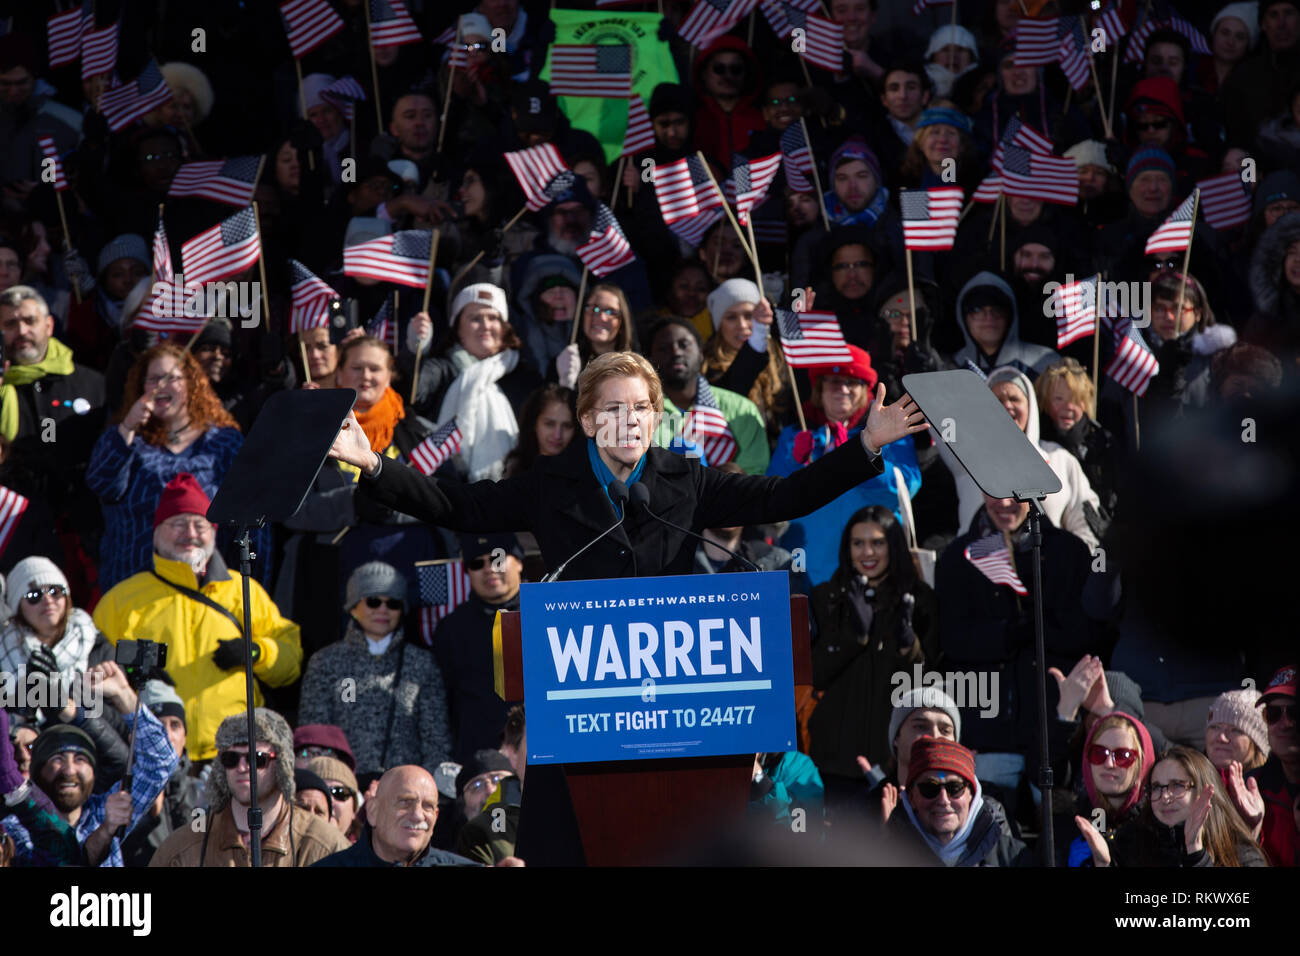 February 9. 2019 Lawrence, Massachusetts, USA: U.S. Senator Elizabeth Warren (D-MA) announcing to launch her campaign for the 2020 Democratic presidential nomination in Lawrence, Massachusetts. Credit: Keiko Hiromi/AFLO/Alamy Live News Stock Photo